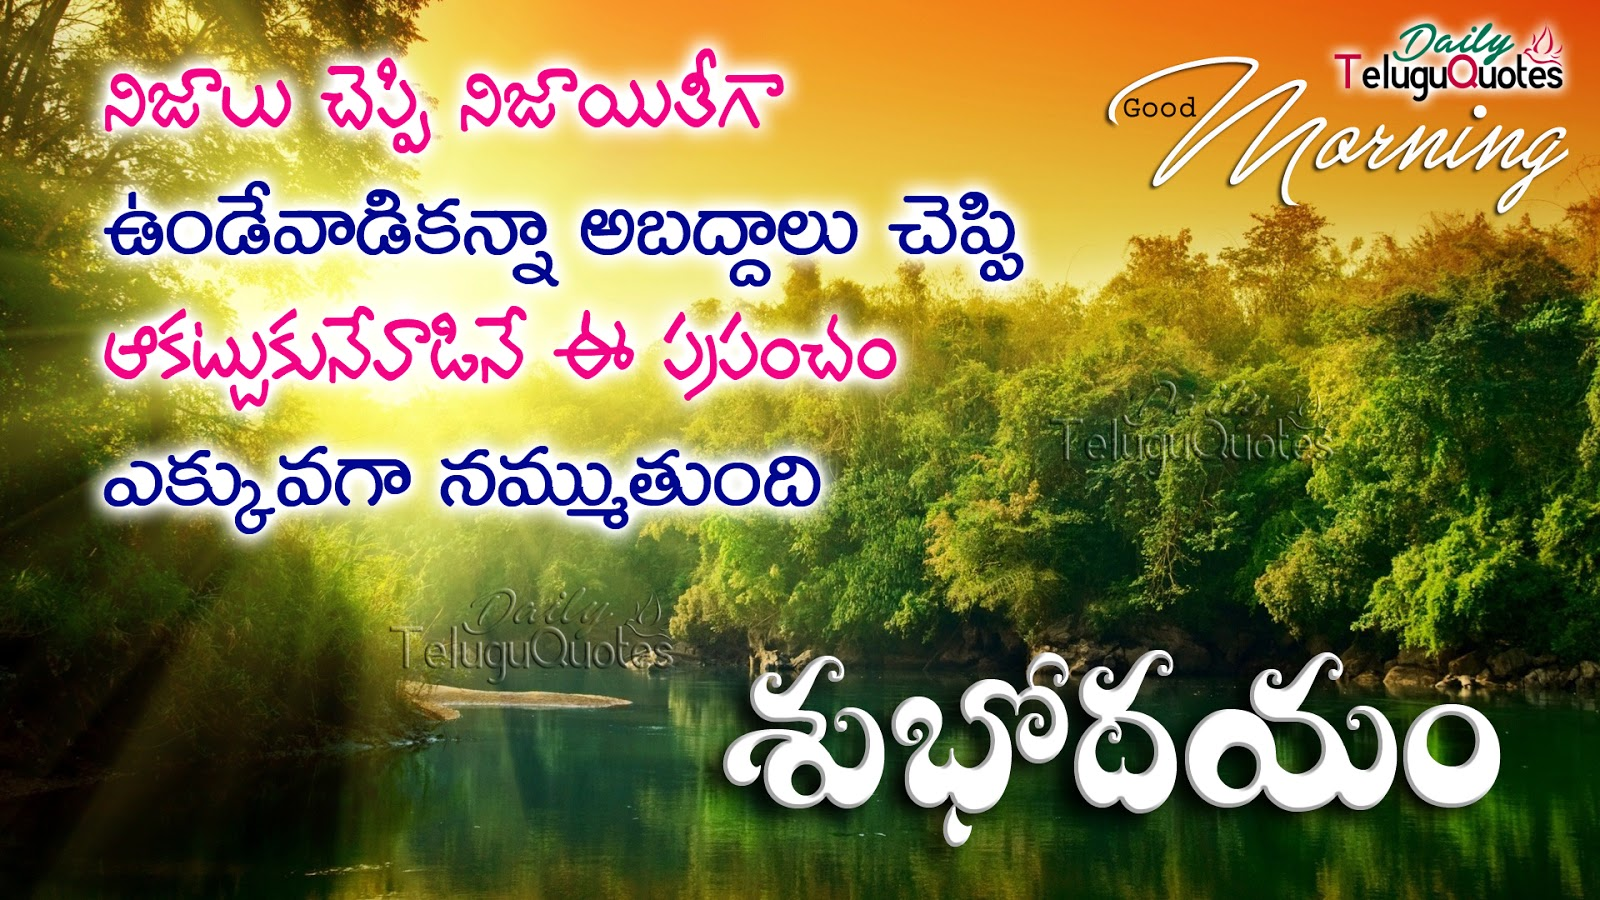 Good Morning Inspirational Quotes Telugu Good Morning Wishes With Inspirational Quotes Hd Wallpapers